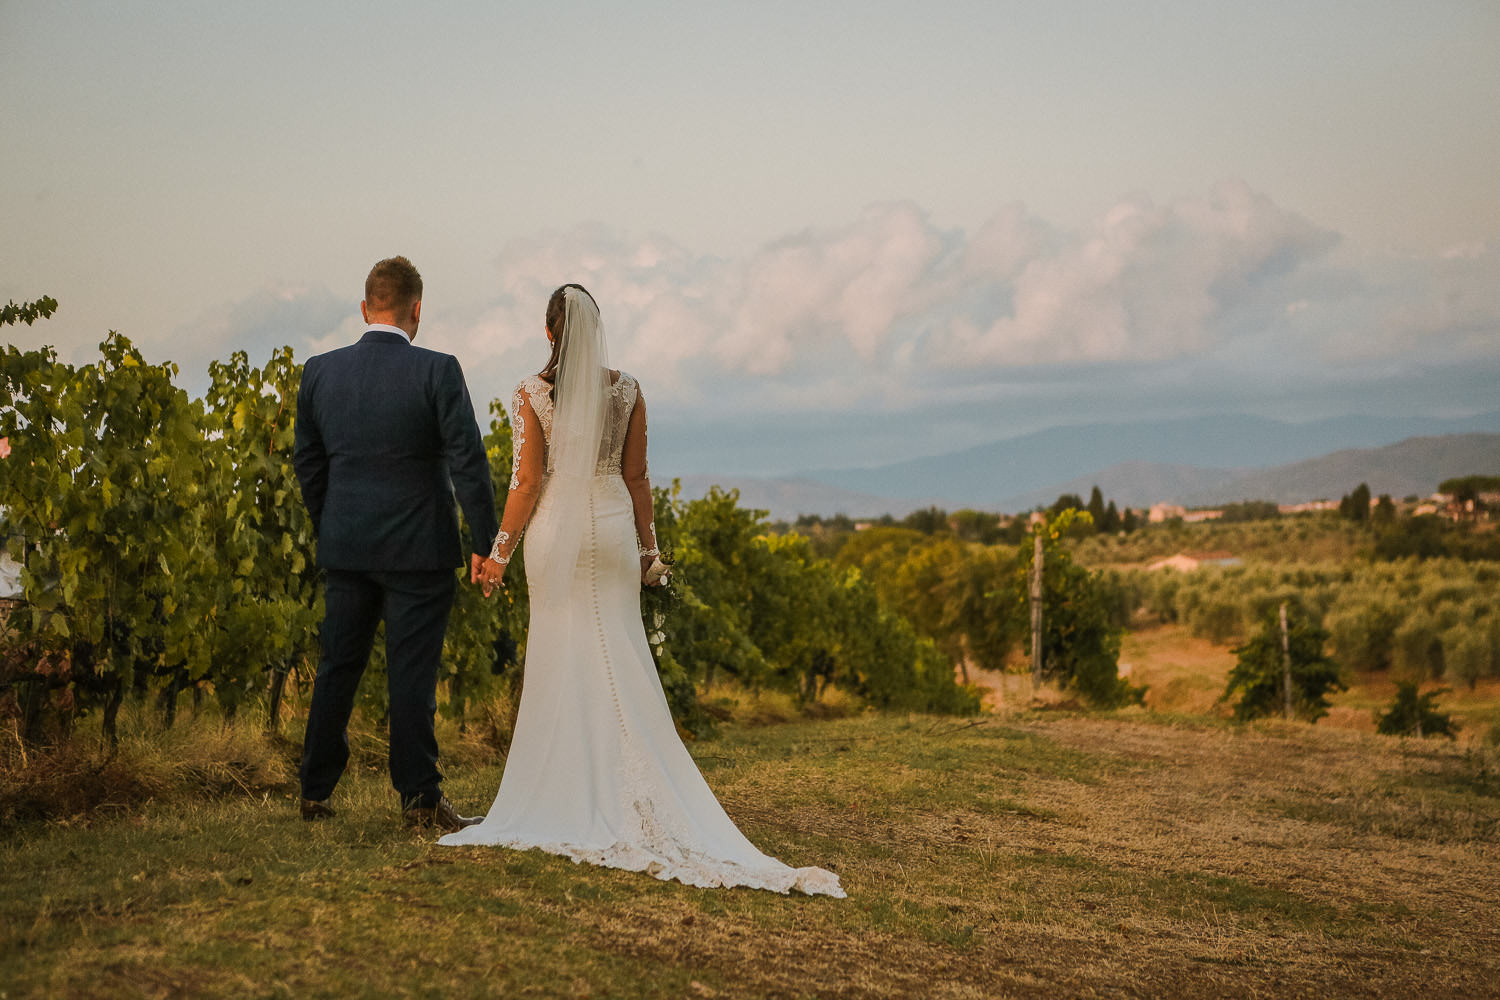 Bride and groom in Tuscany vine yard